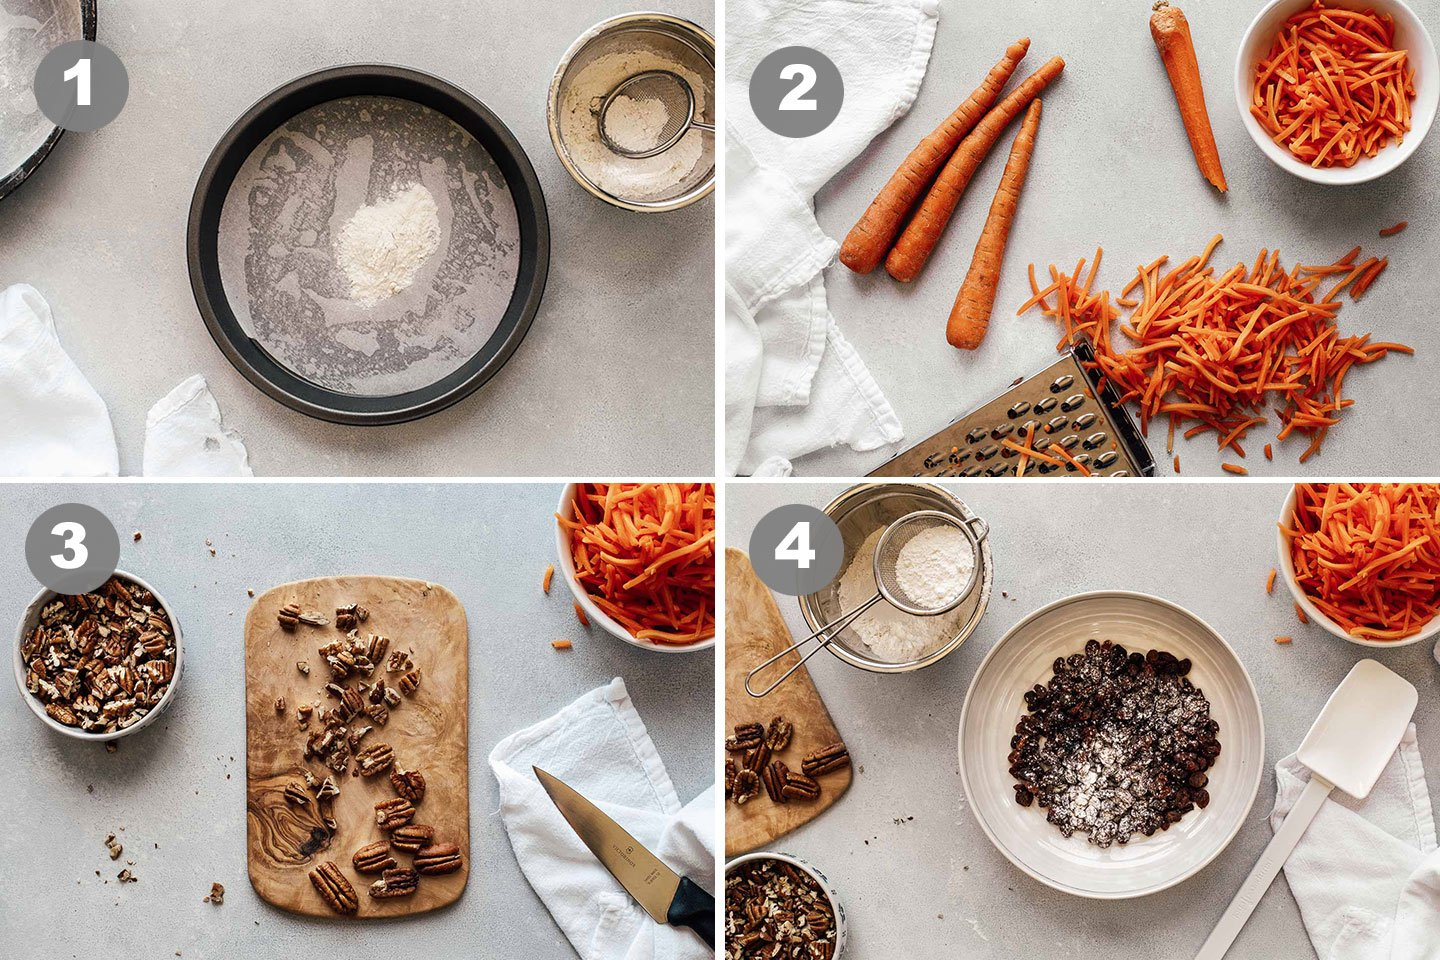 how to make Carrot Cake steps 1-4.